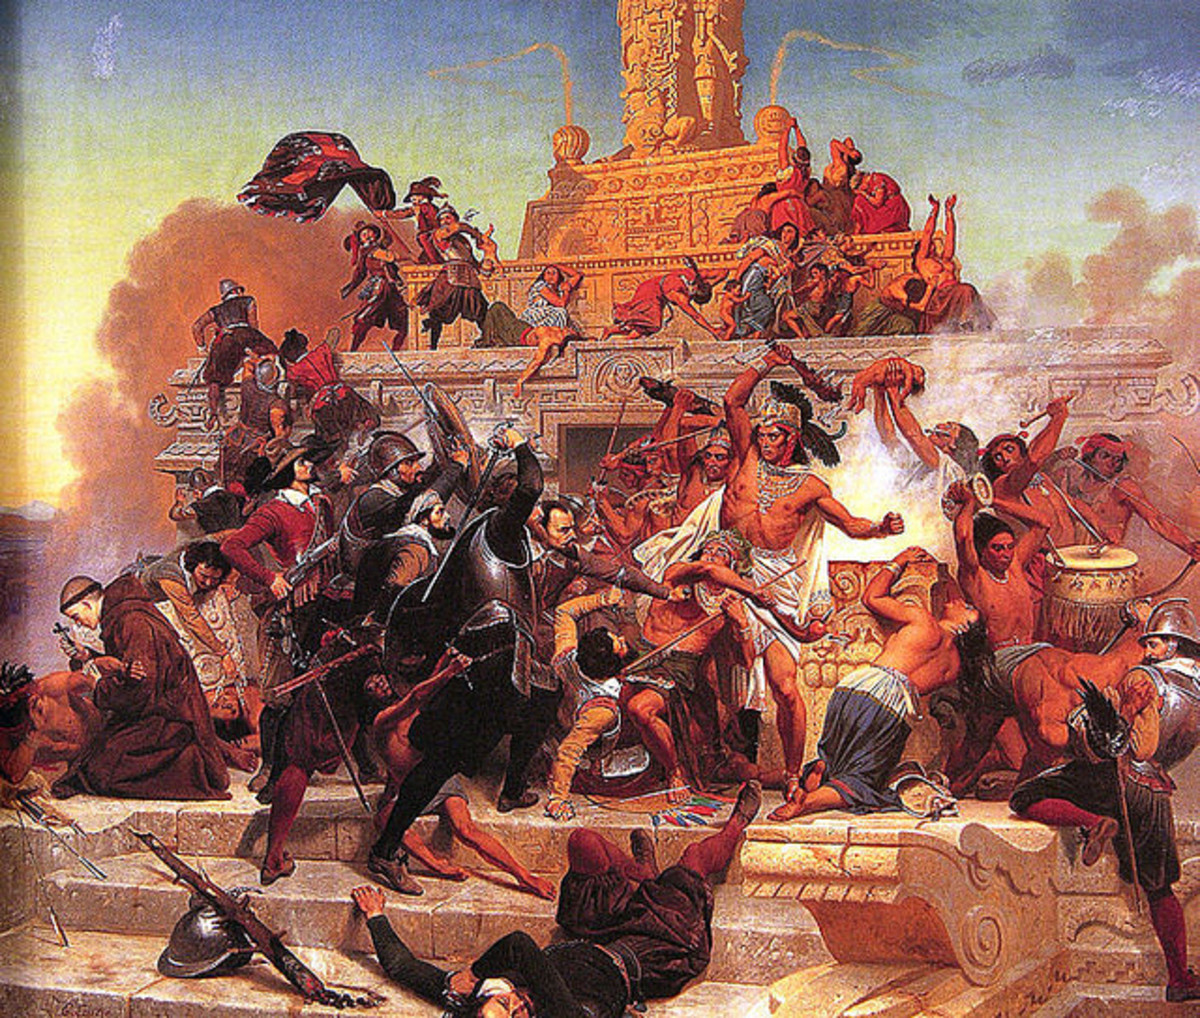 An Encounter Between Warring Cultures: The Spanish and the Aztecs